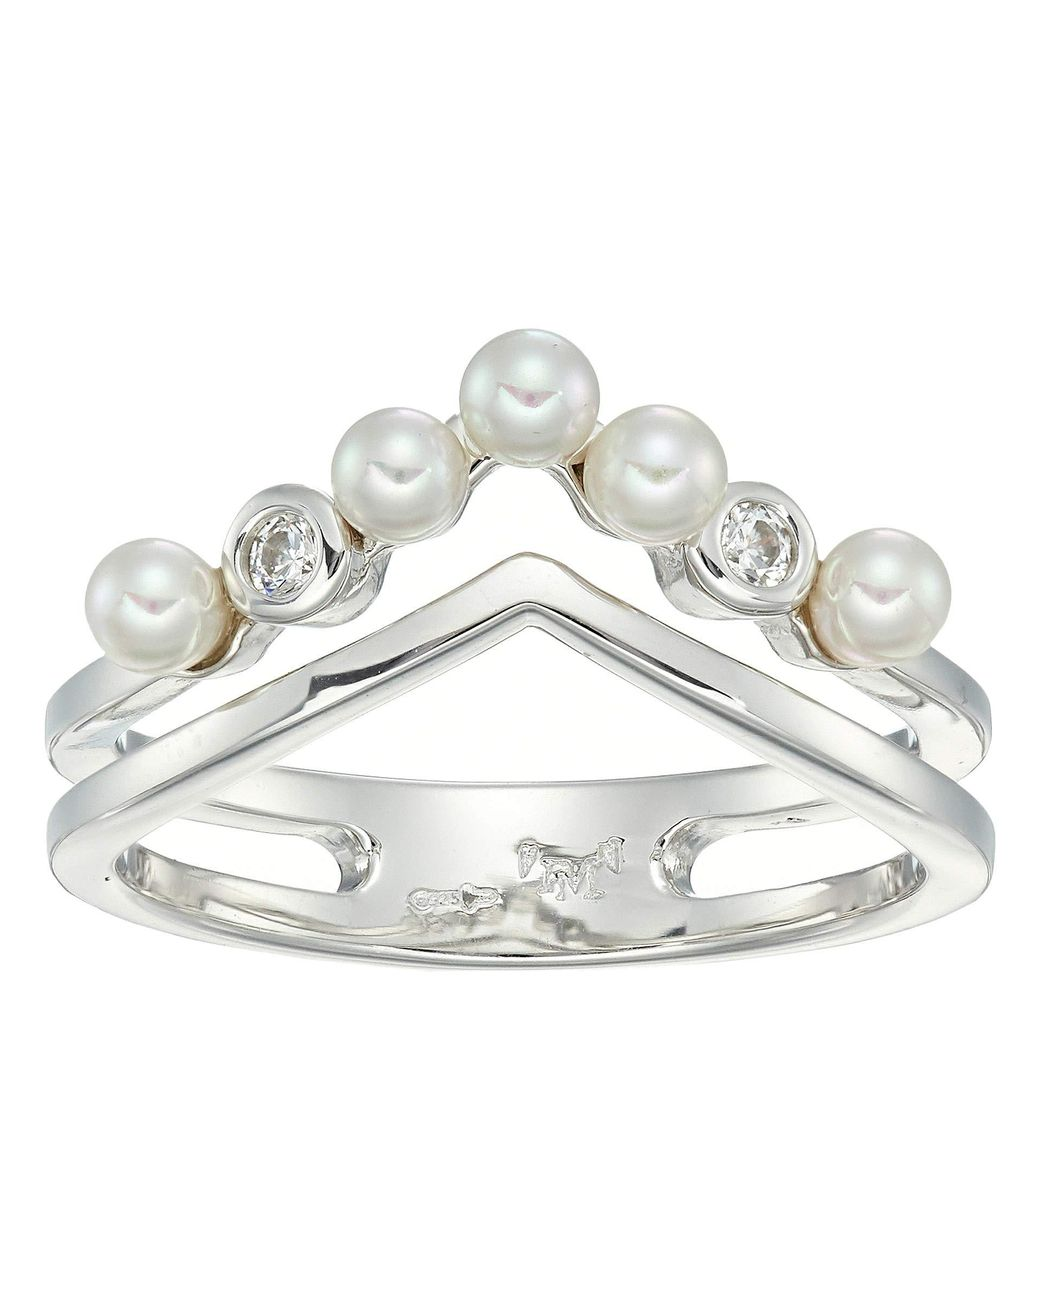 Toe Ring Princess and Pear Cut Crossing CZ Gems Adjustable Mid Ring